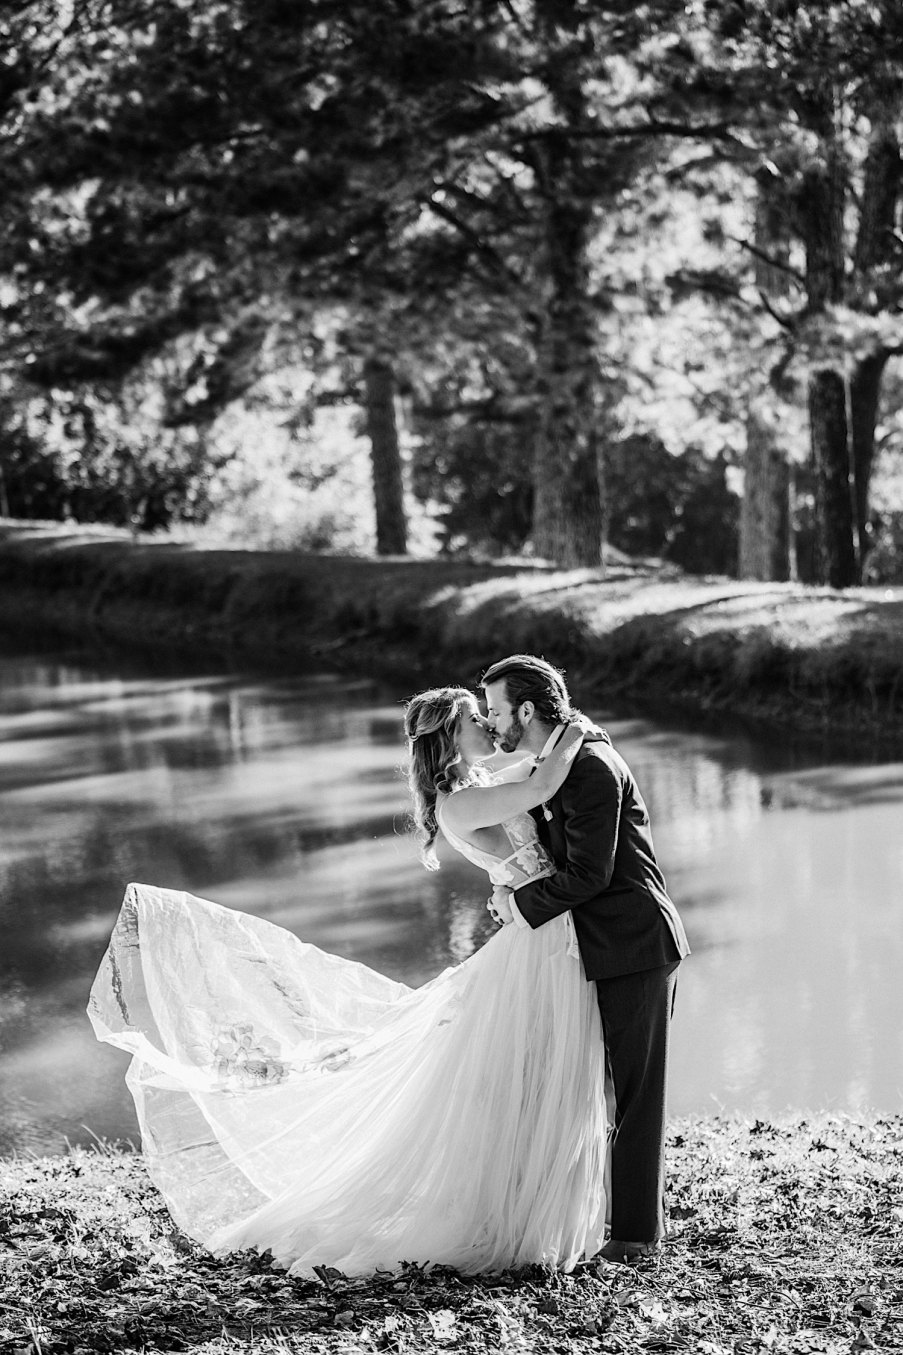 Bride and groom newly wed portraits wedding photography